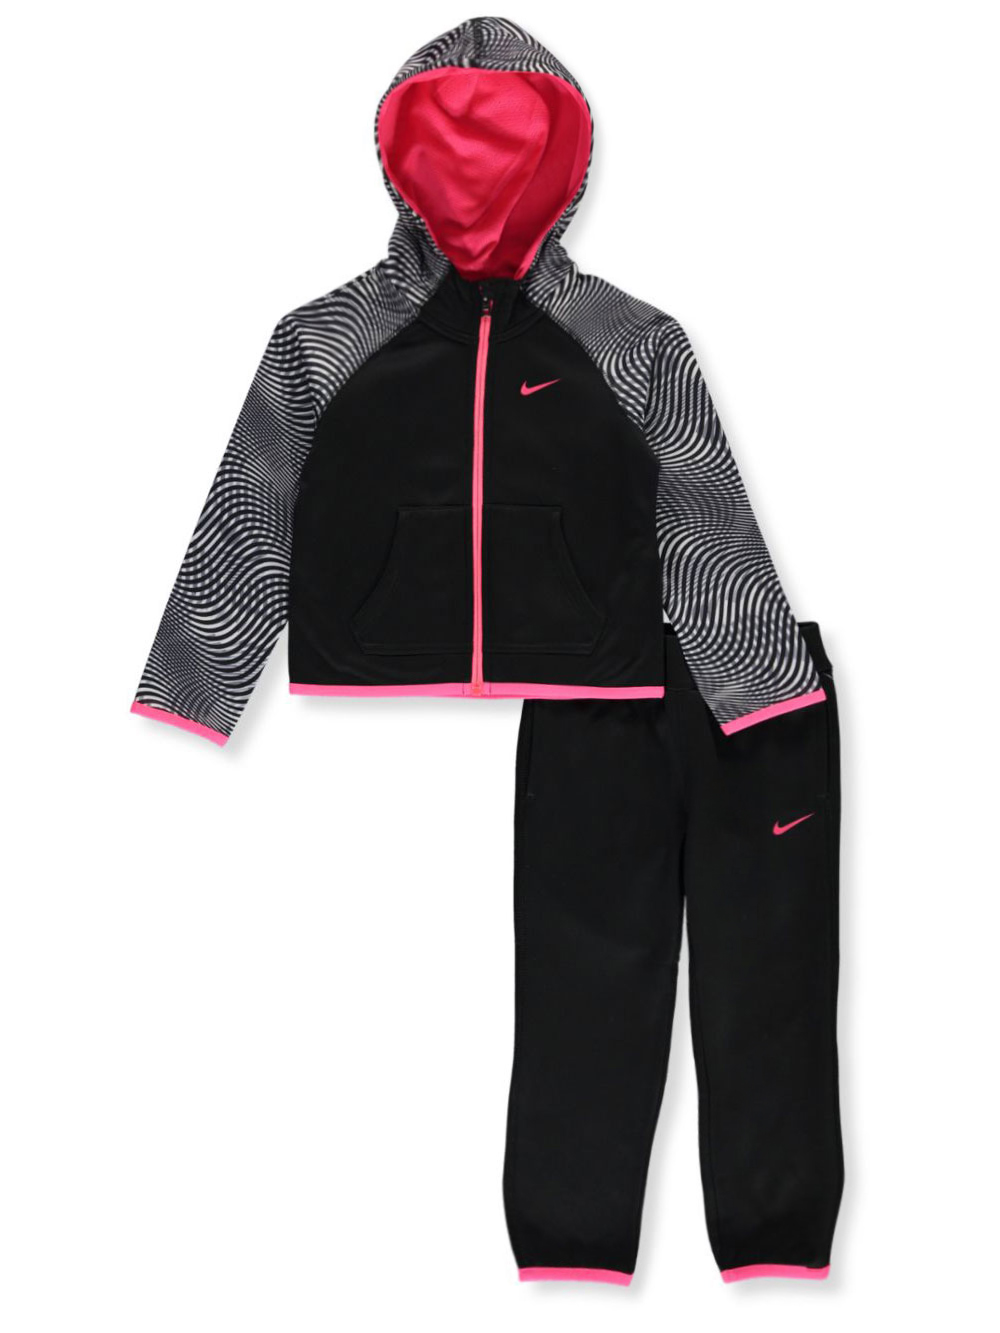 Girls' 2-Piece Sweatsuit Outfit